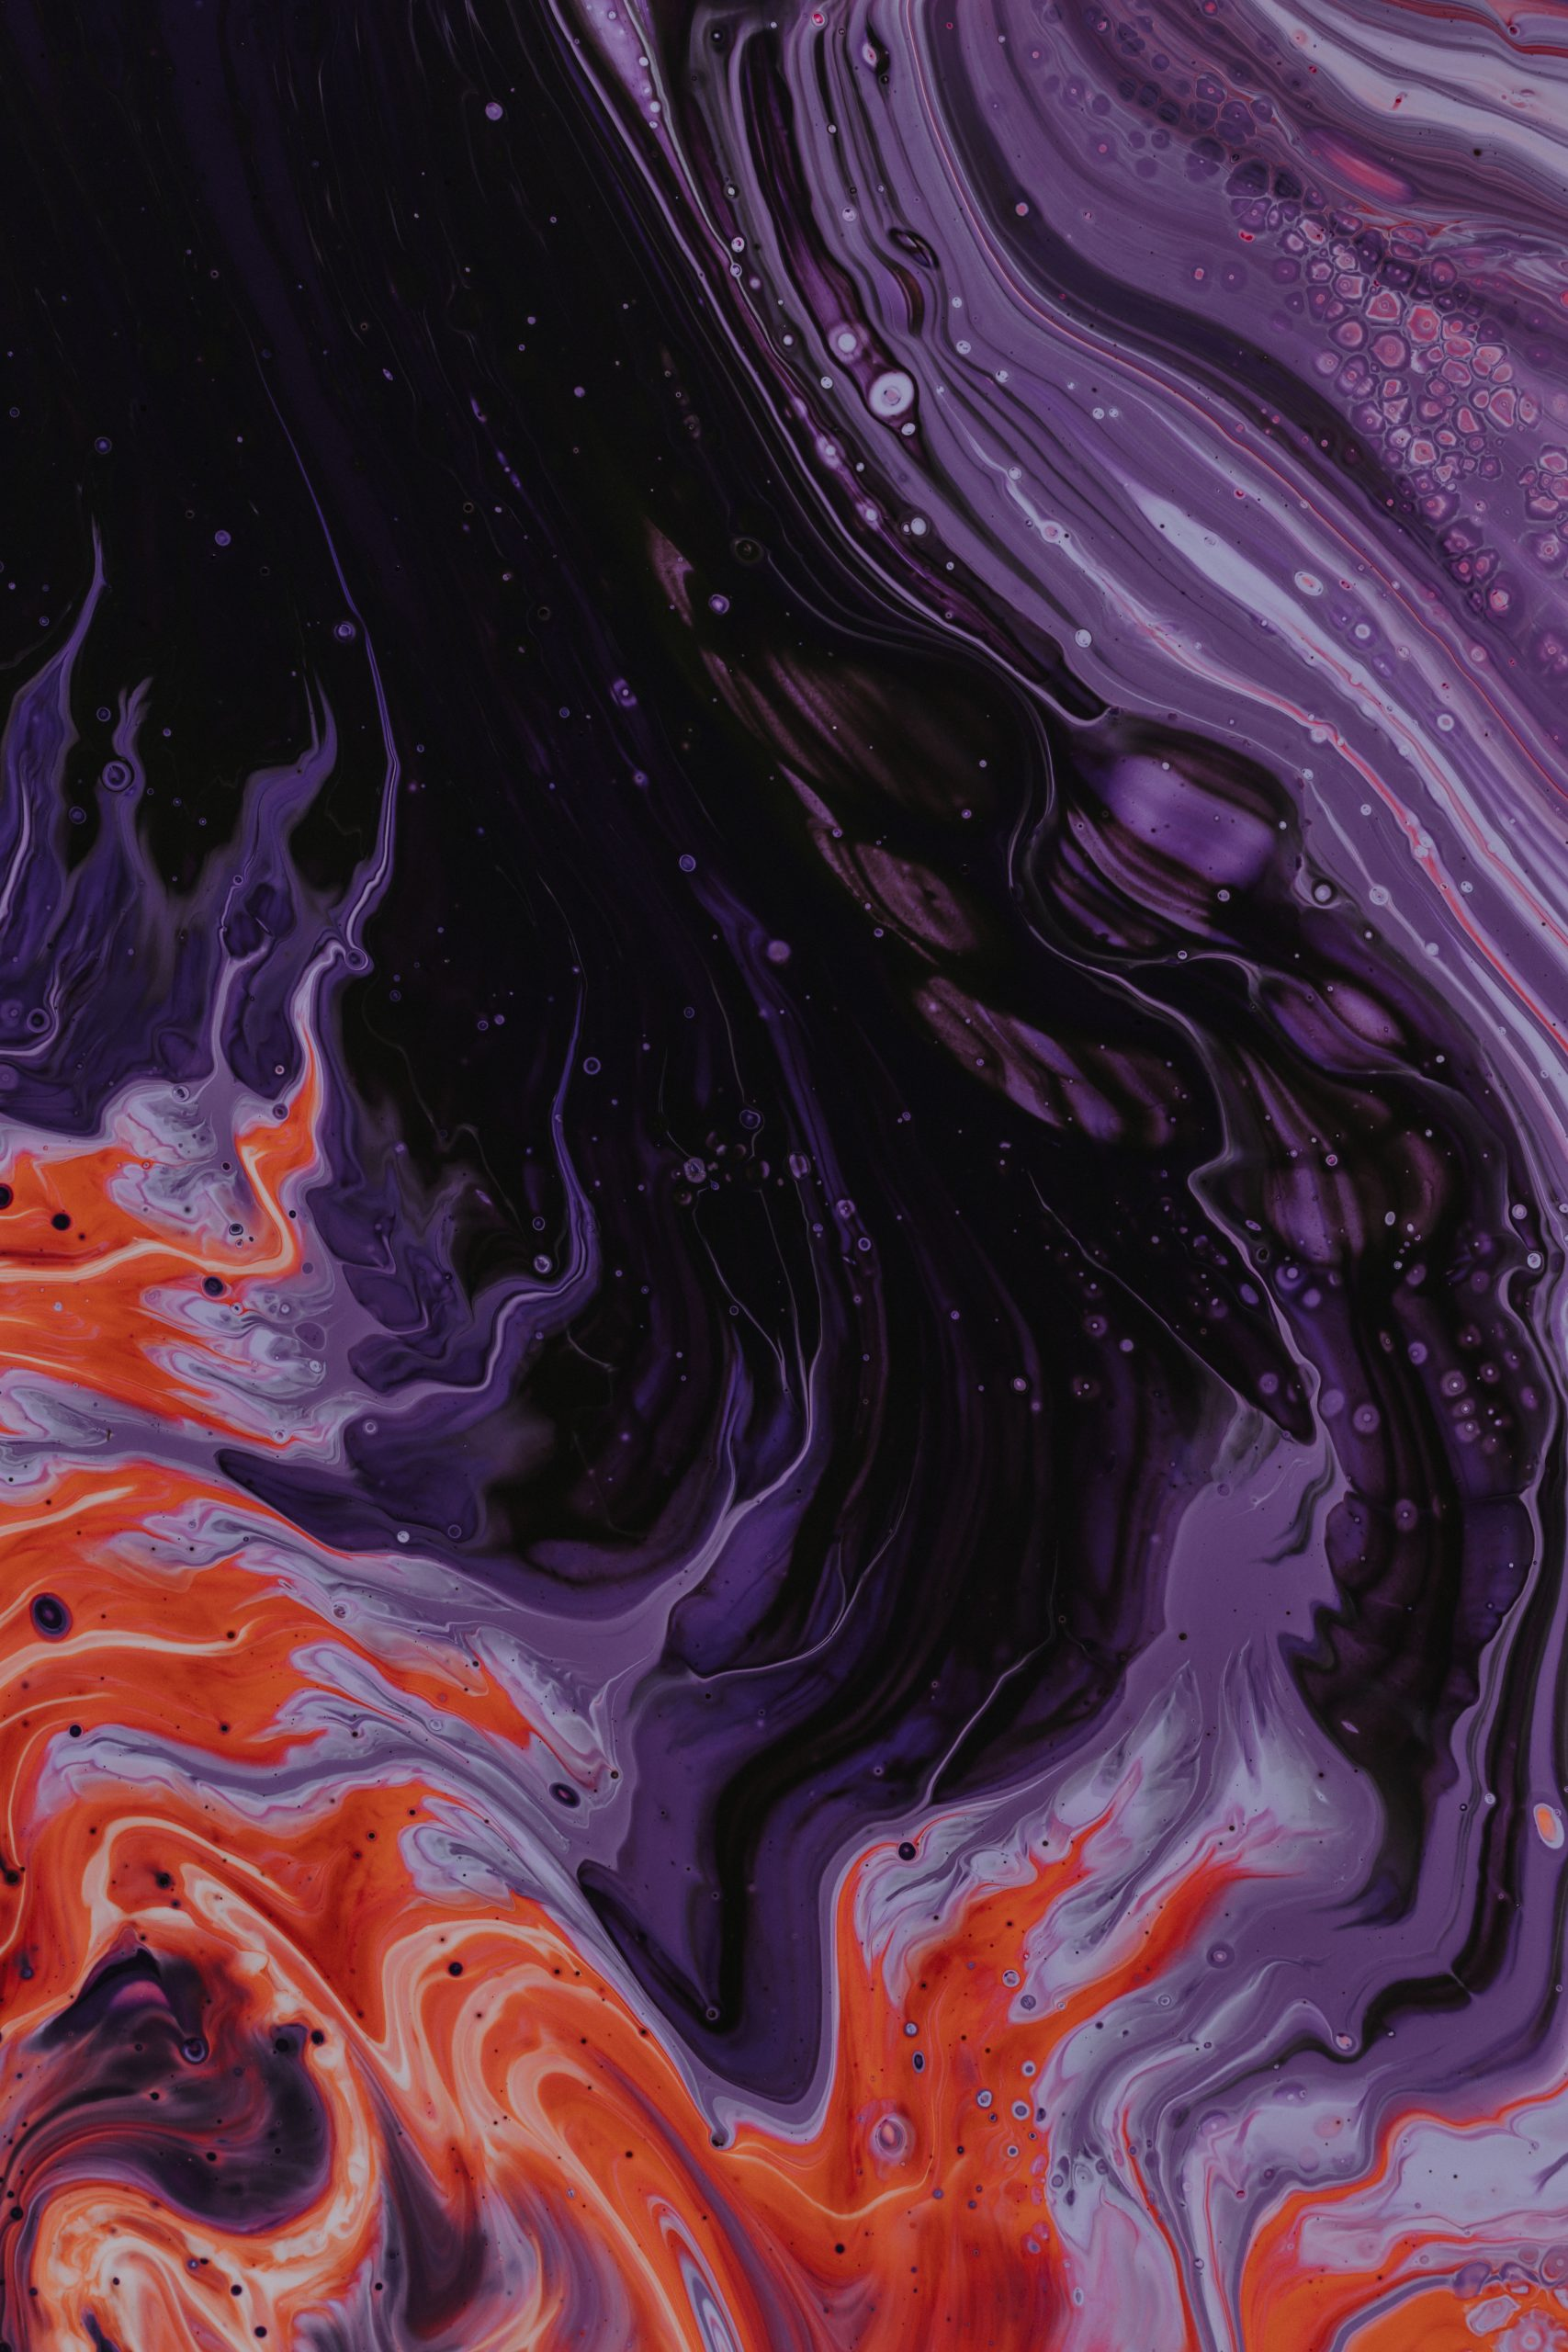 wallpaper Purple, black, and orange abstract painting